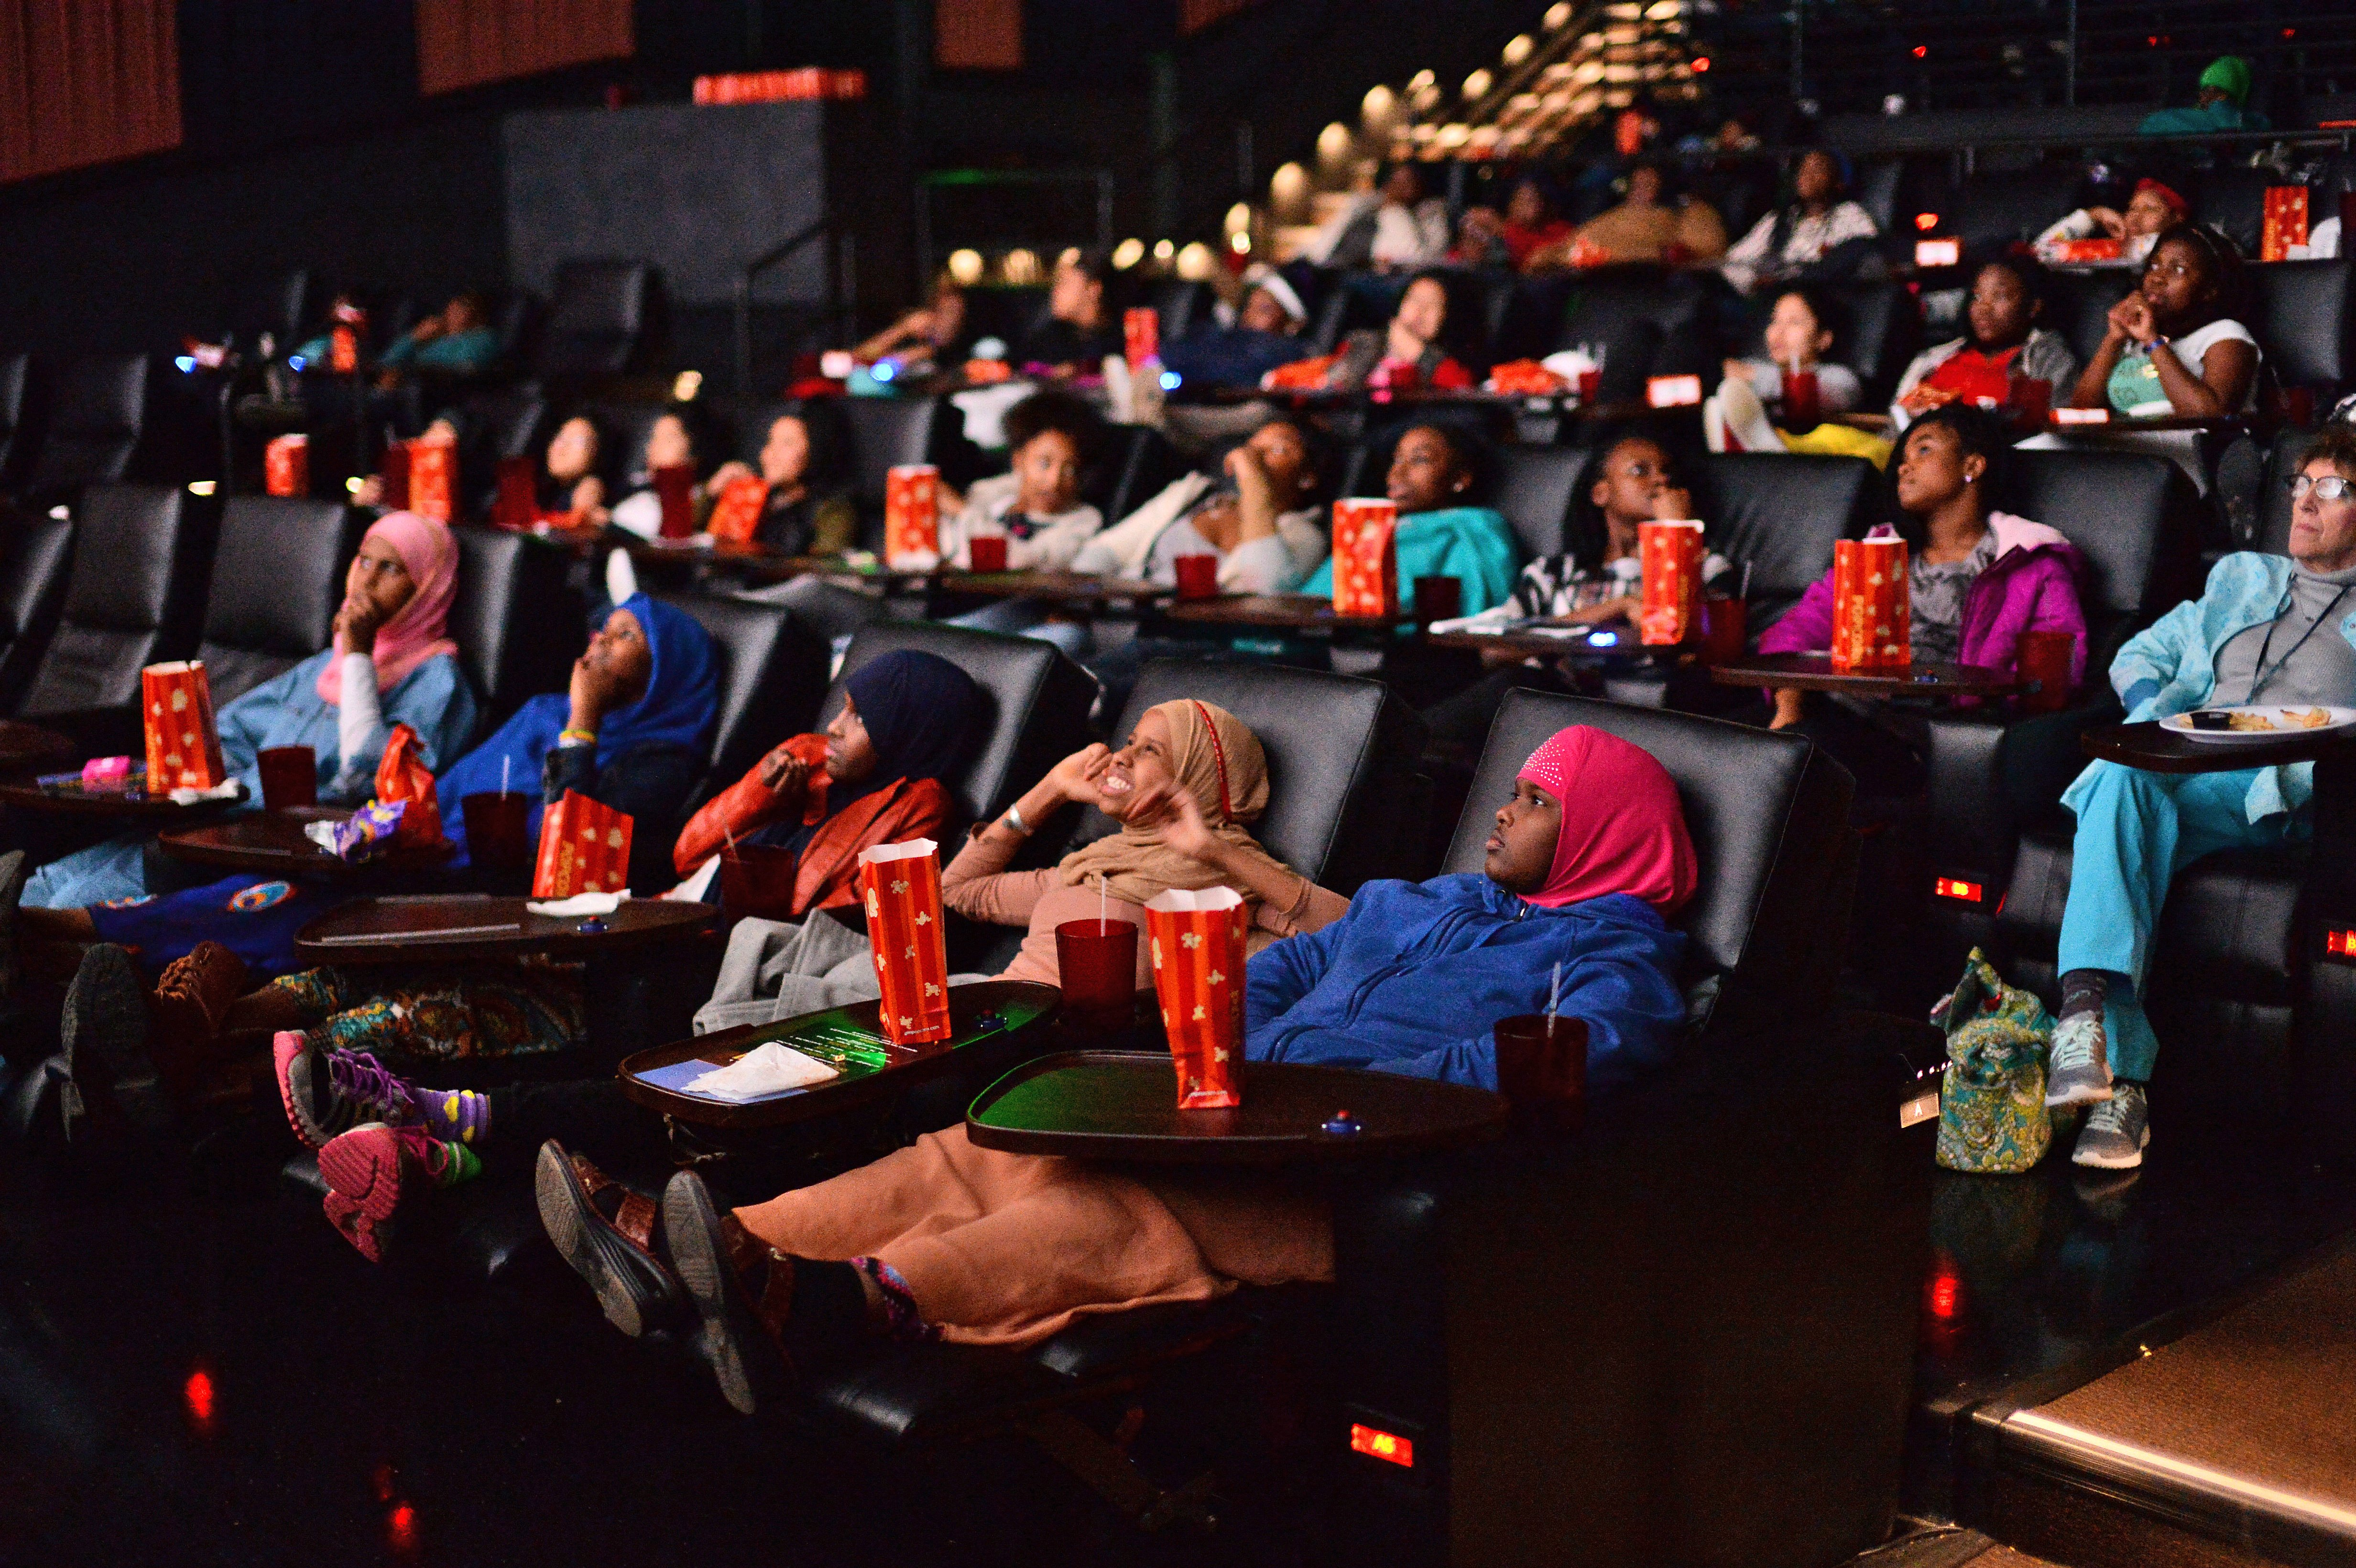 When Will Movie Theaters Reopen What Will They Look Like Amid Coronavirus Syracuse Com